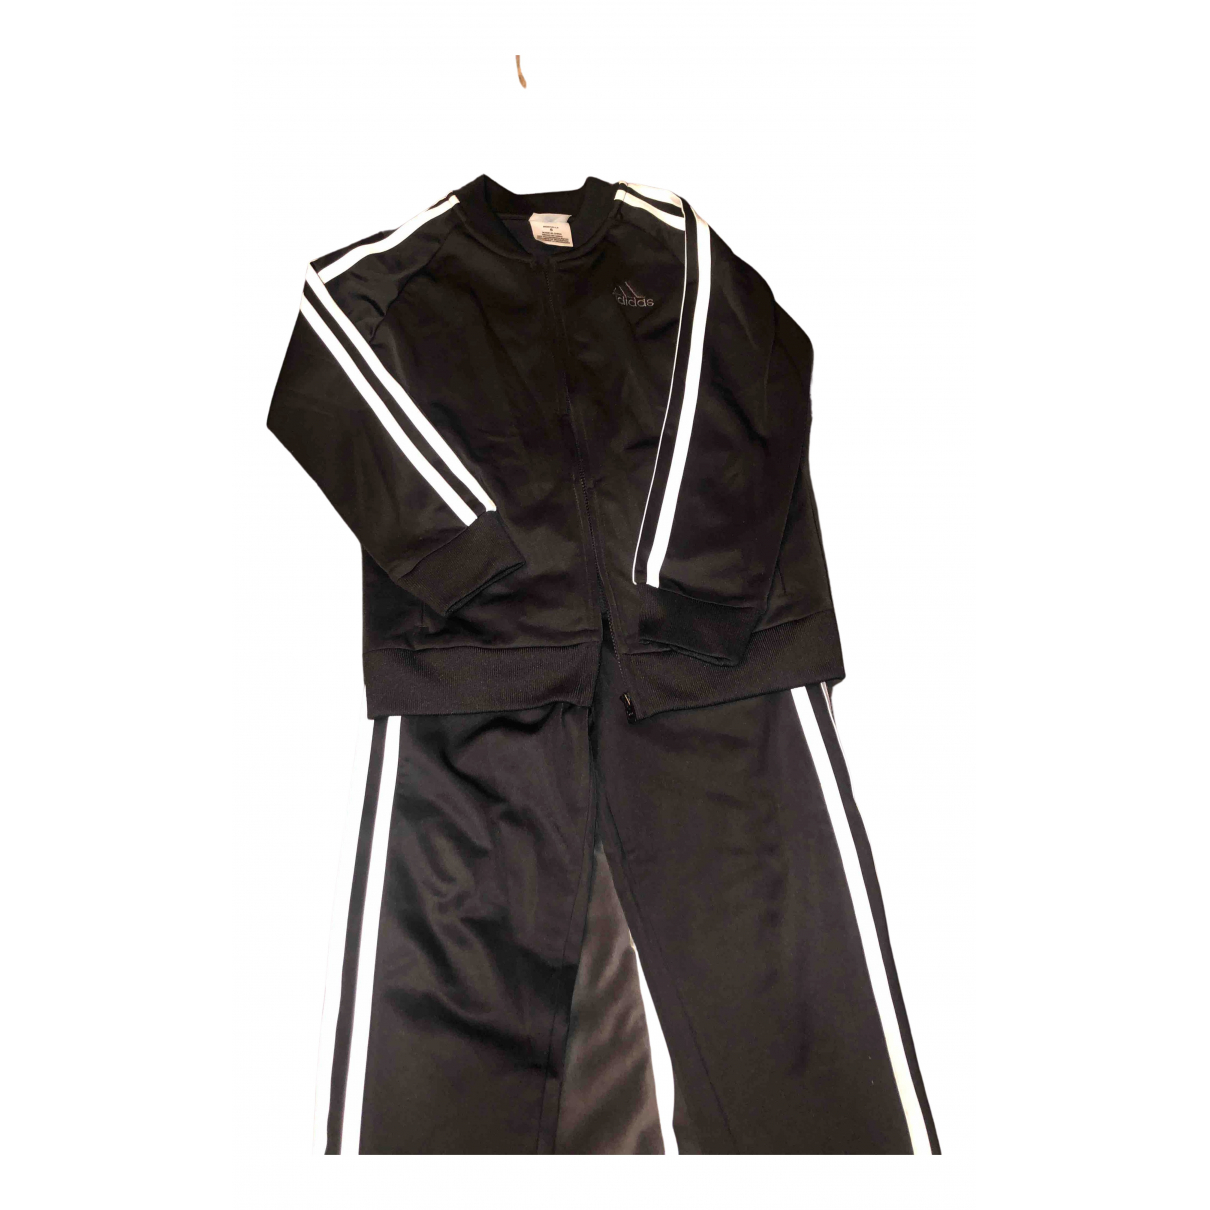 Adidas N Black Outfits for Kids 6 years - until 45 inches UK